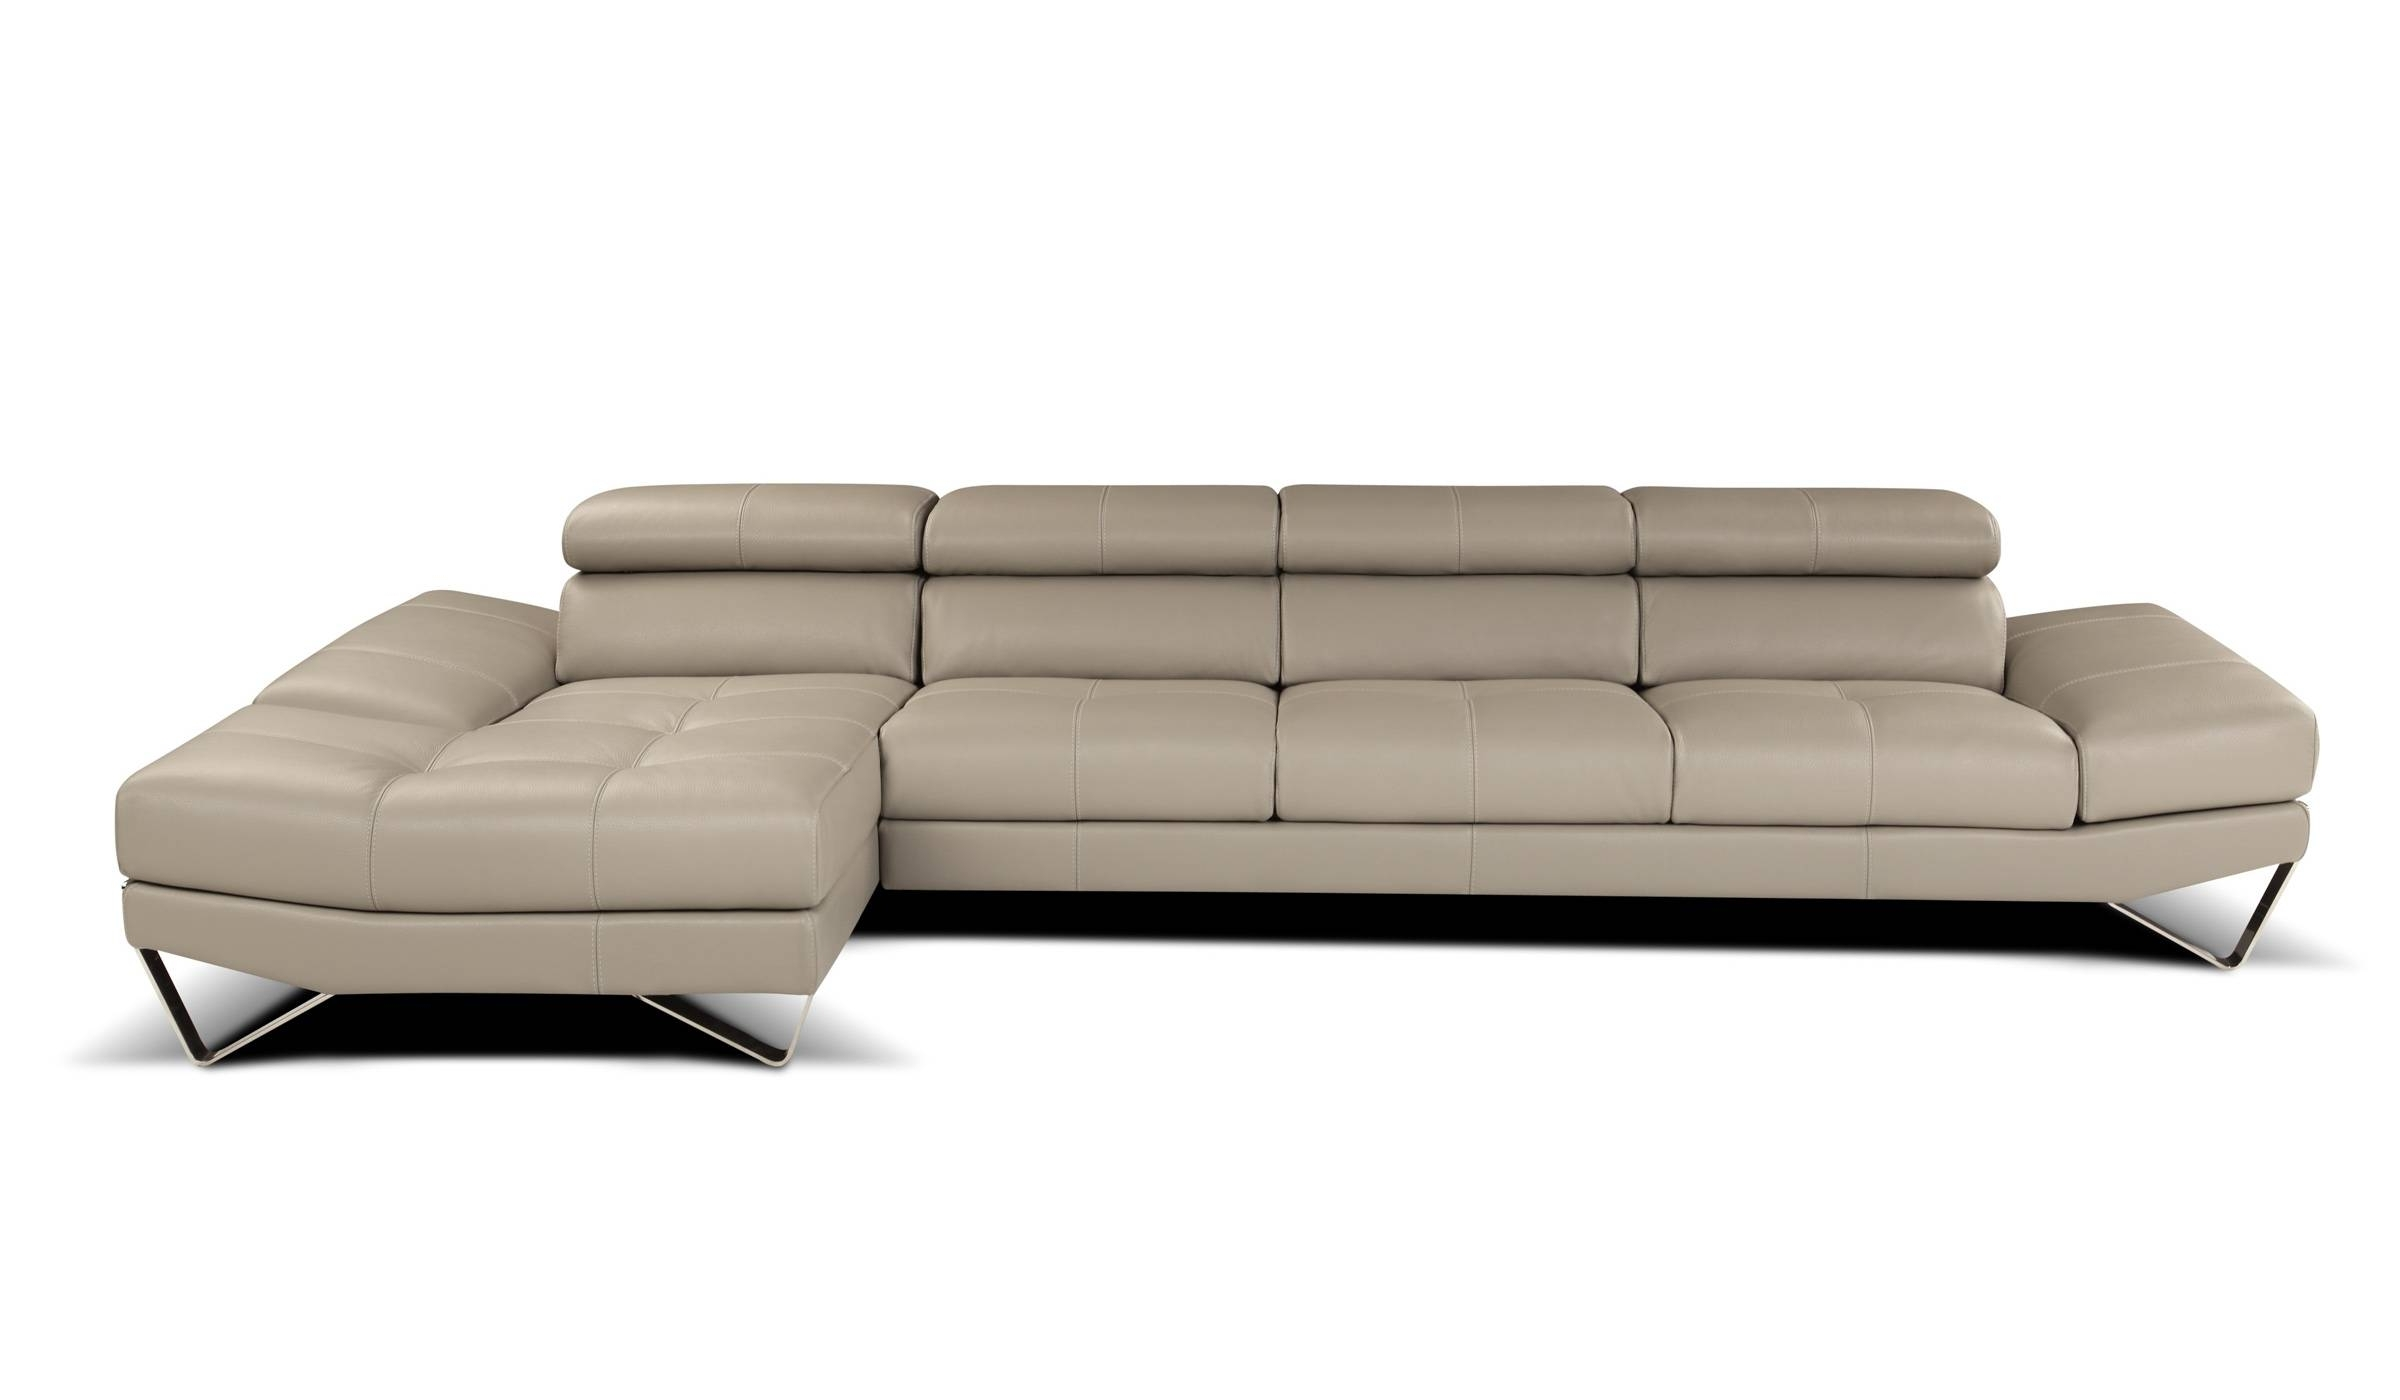 Widely Used High End Leather Sectional Sofas Regarding Sophisticated All Italian Leather Sectional Sofa Spokane (View 12 of 20)